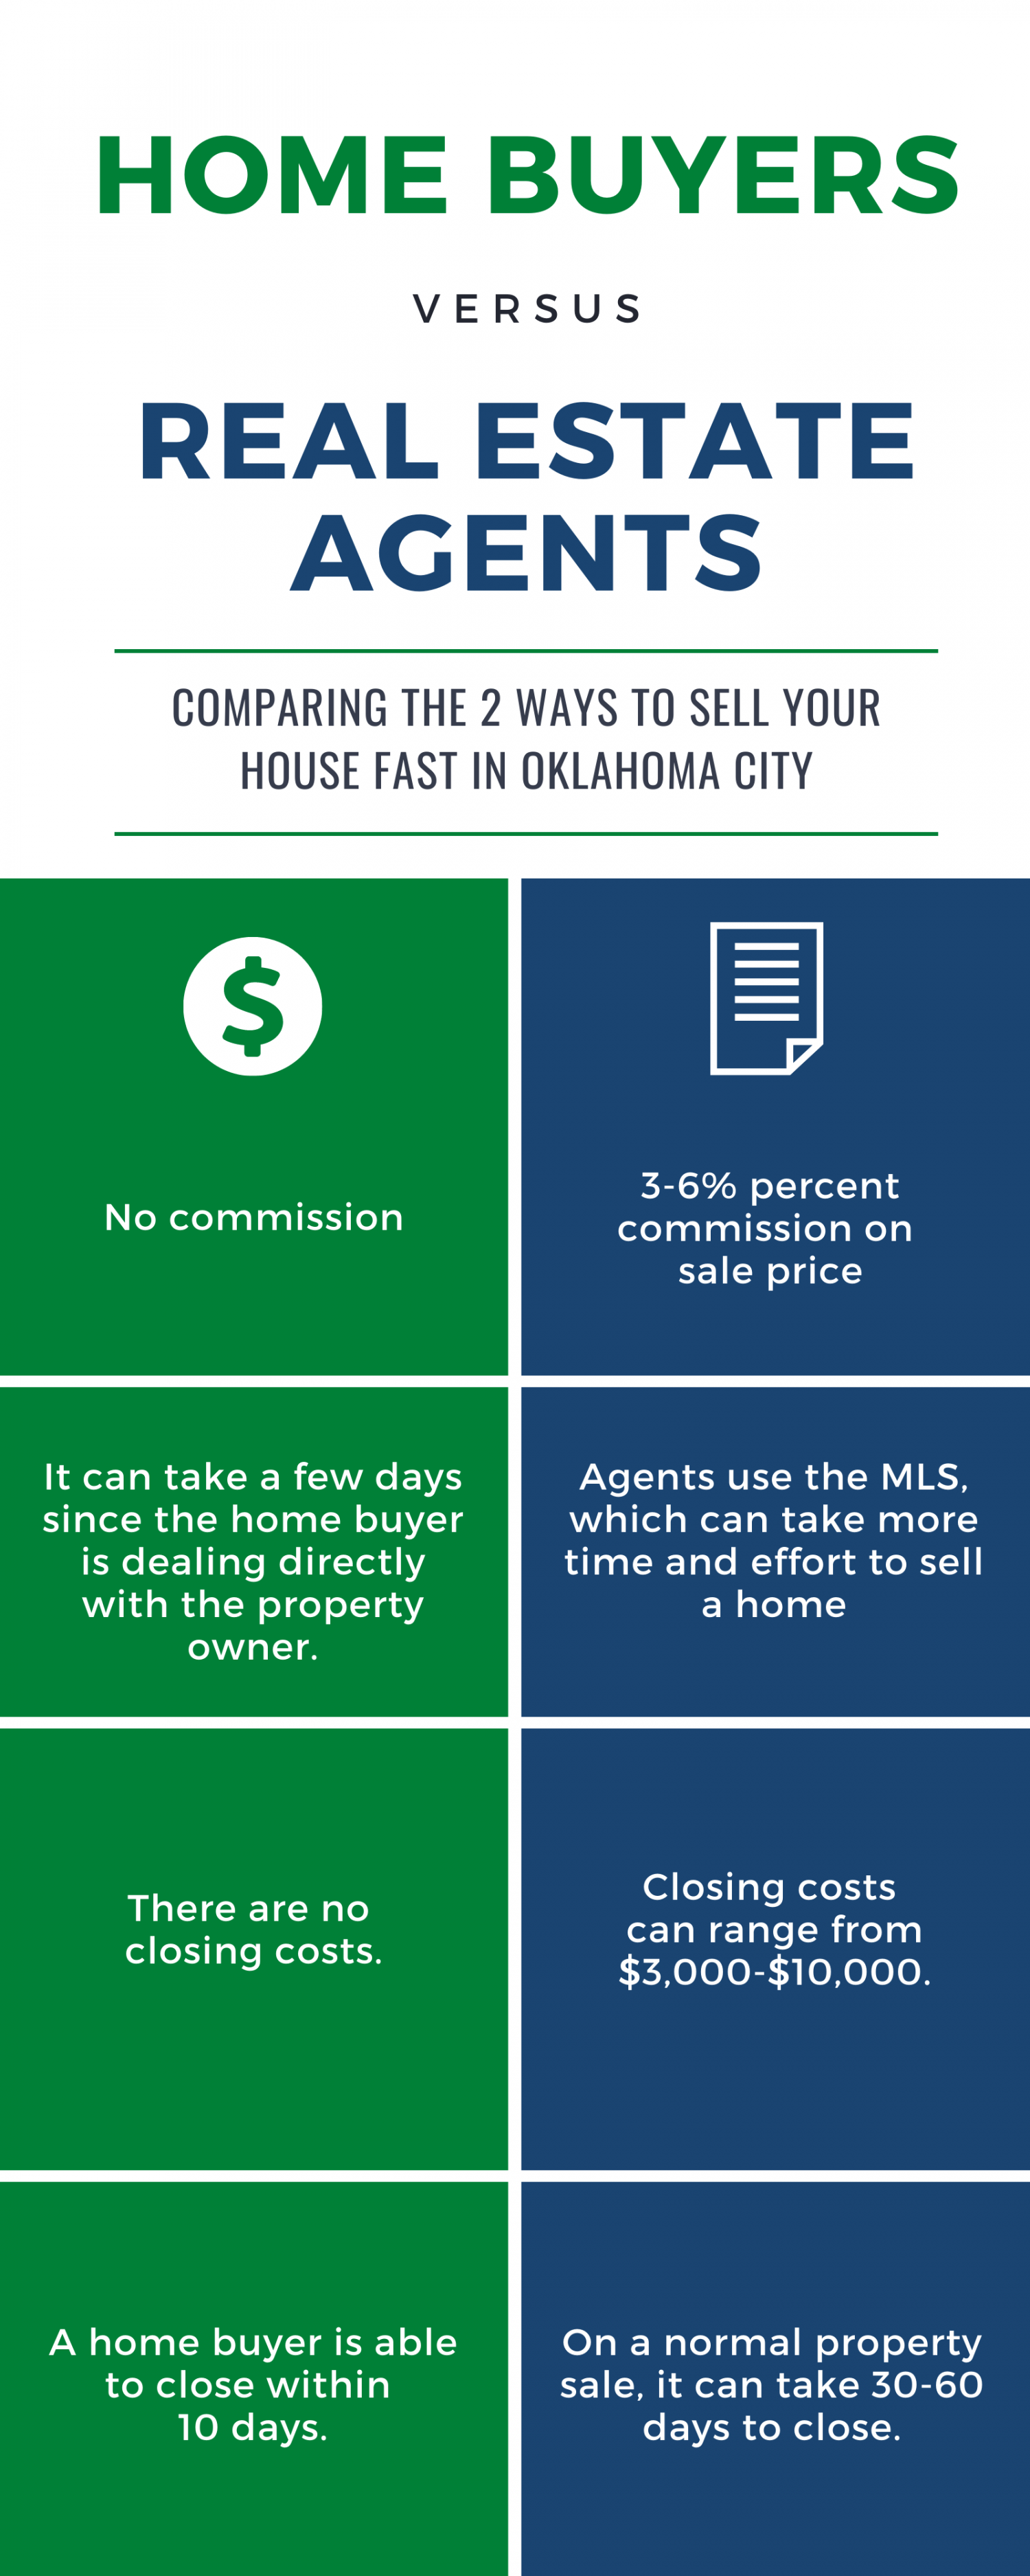 Comparing the 2 Ways to Sell Your House Fast in Oklahoma City Infographic